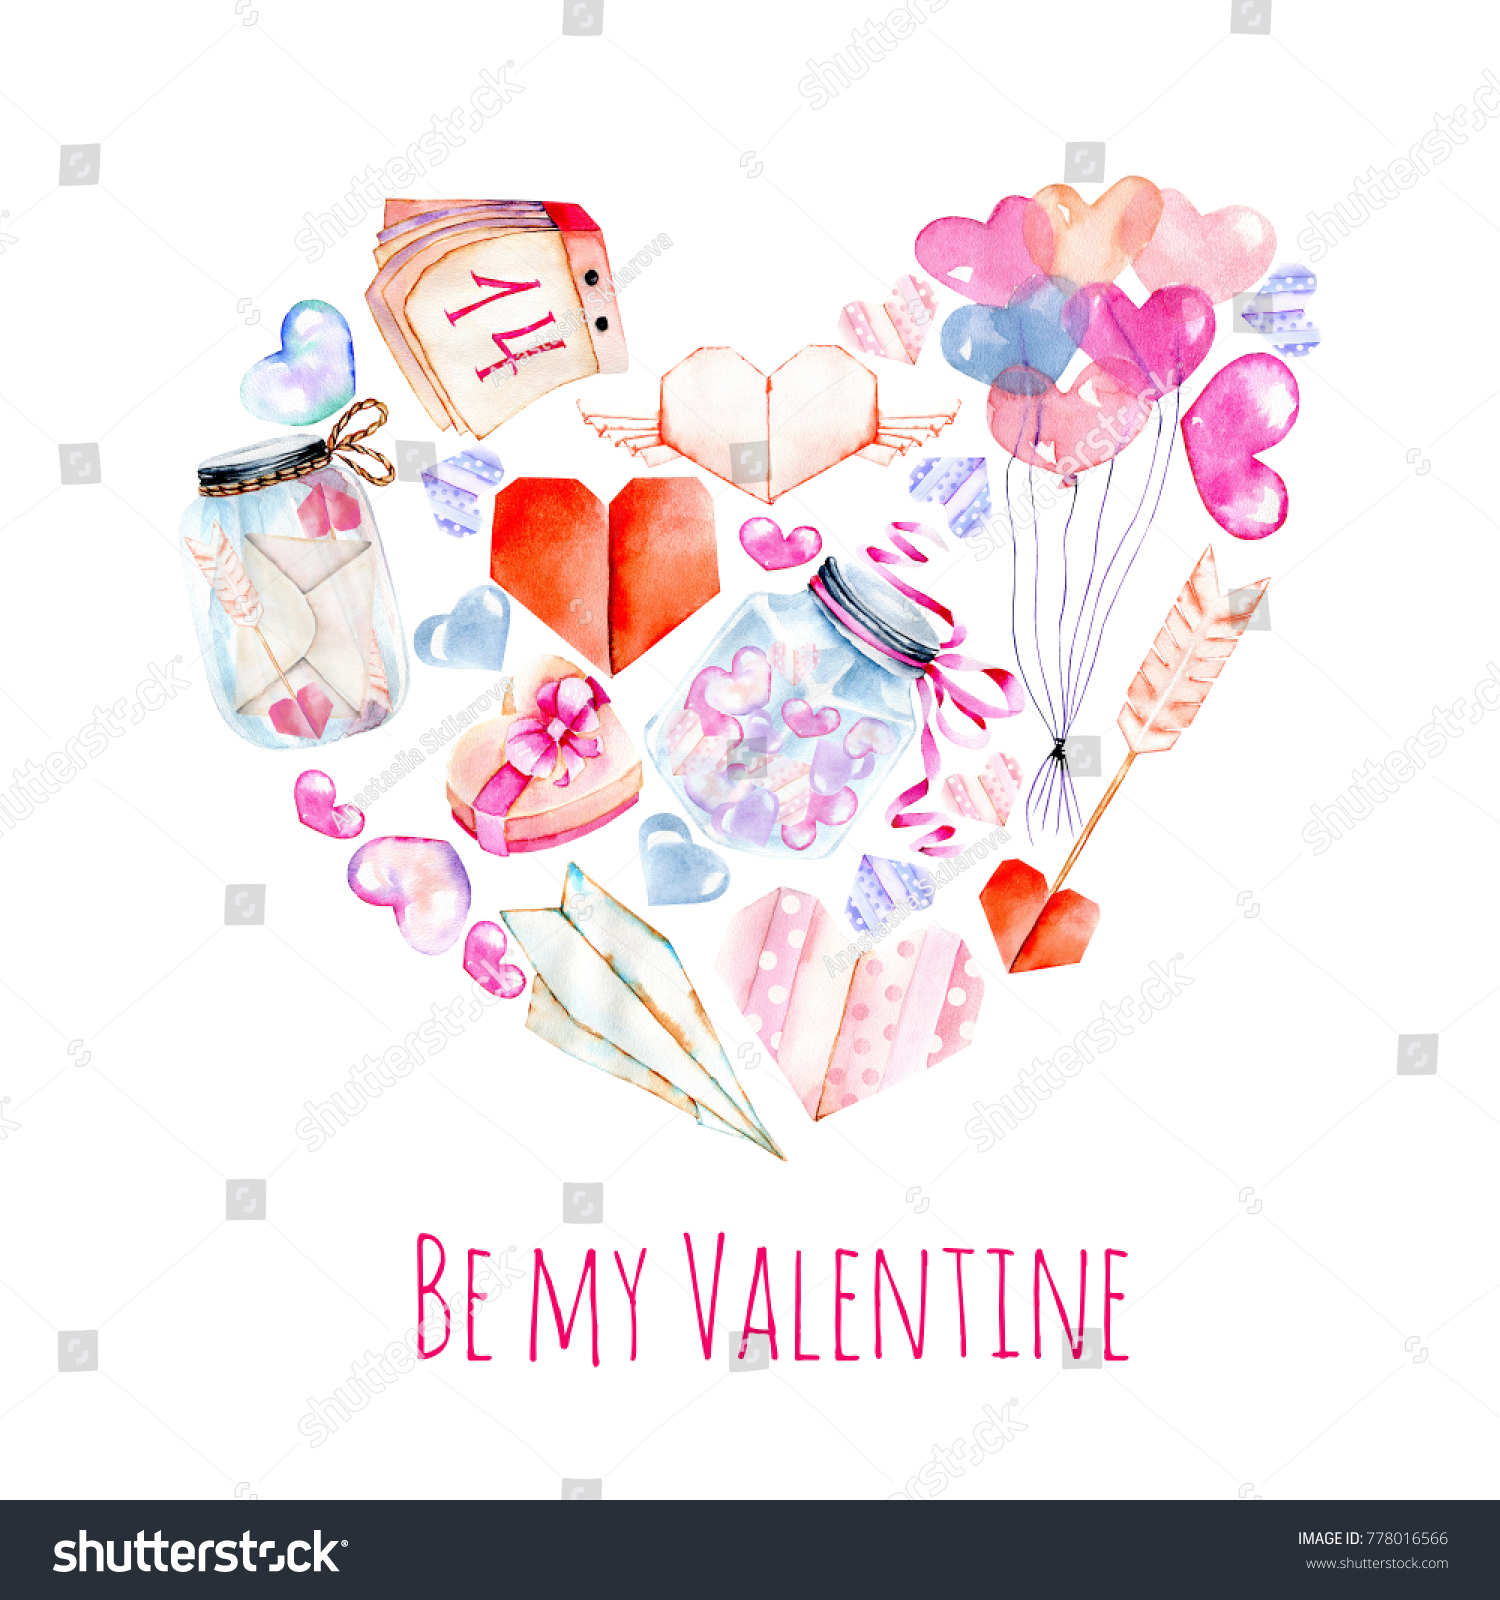 Watercolor valentines day elements greeting card stock watercolor valentines day elements greeting card hearts origami arrow gift box jeuxipadfo Choice Image